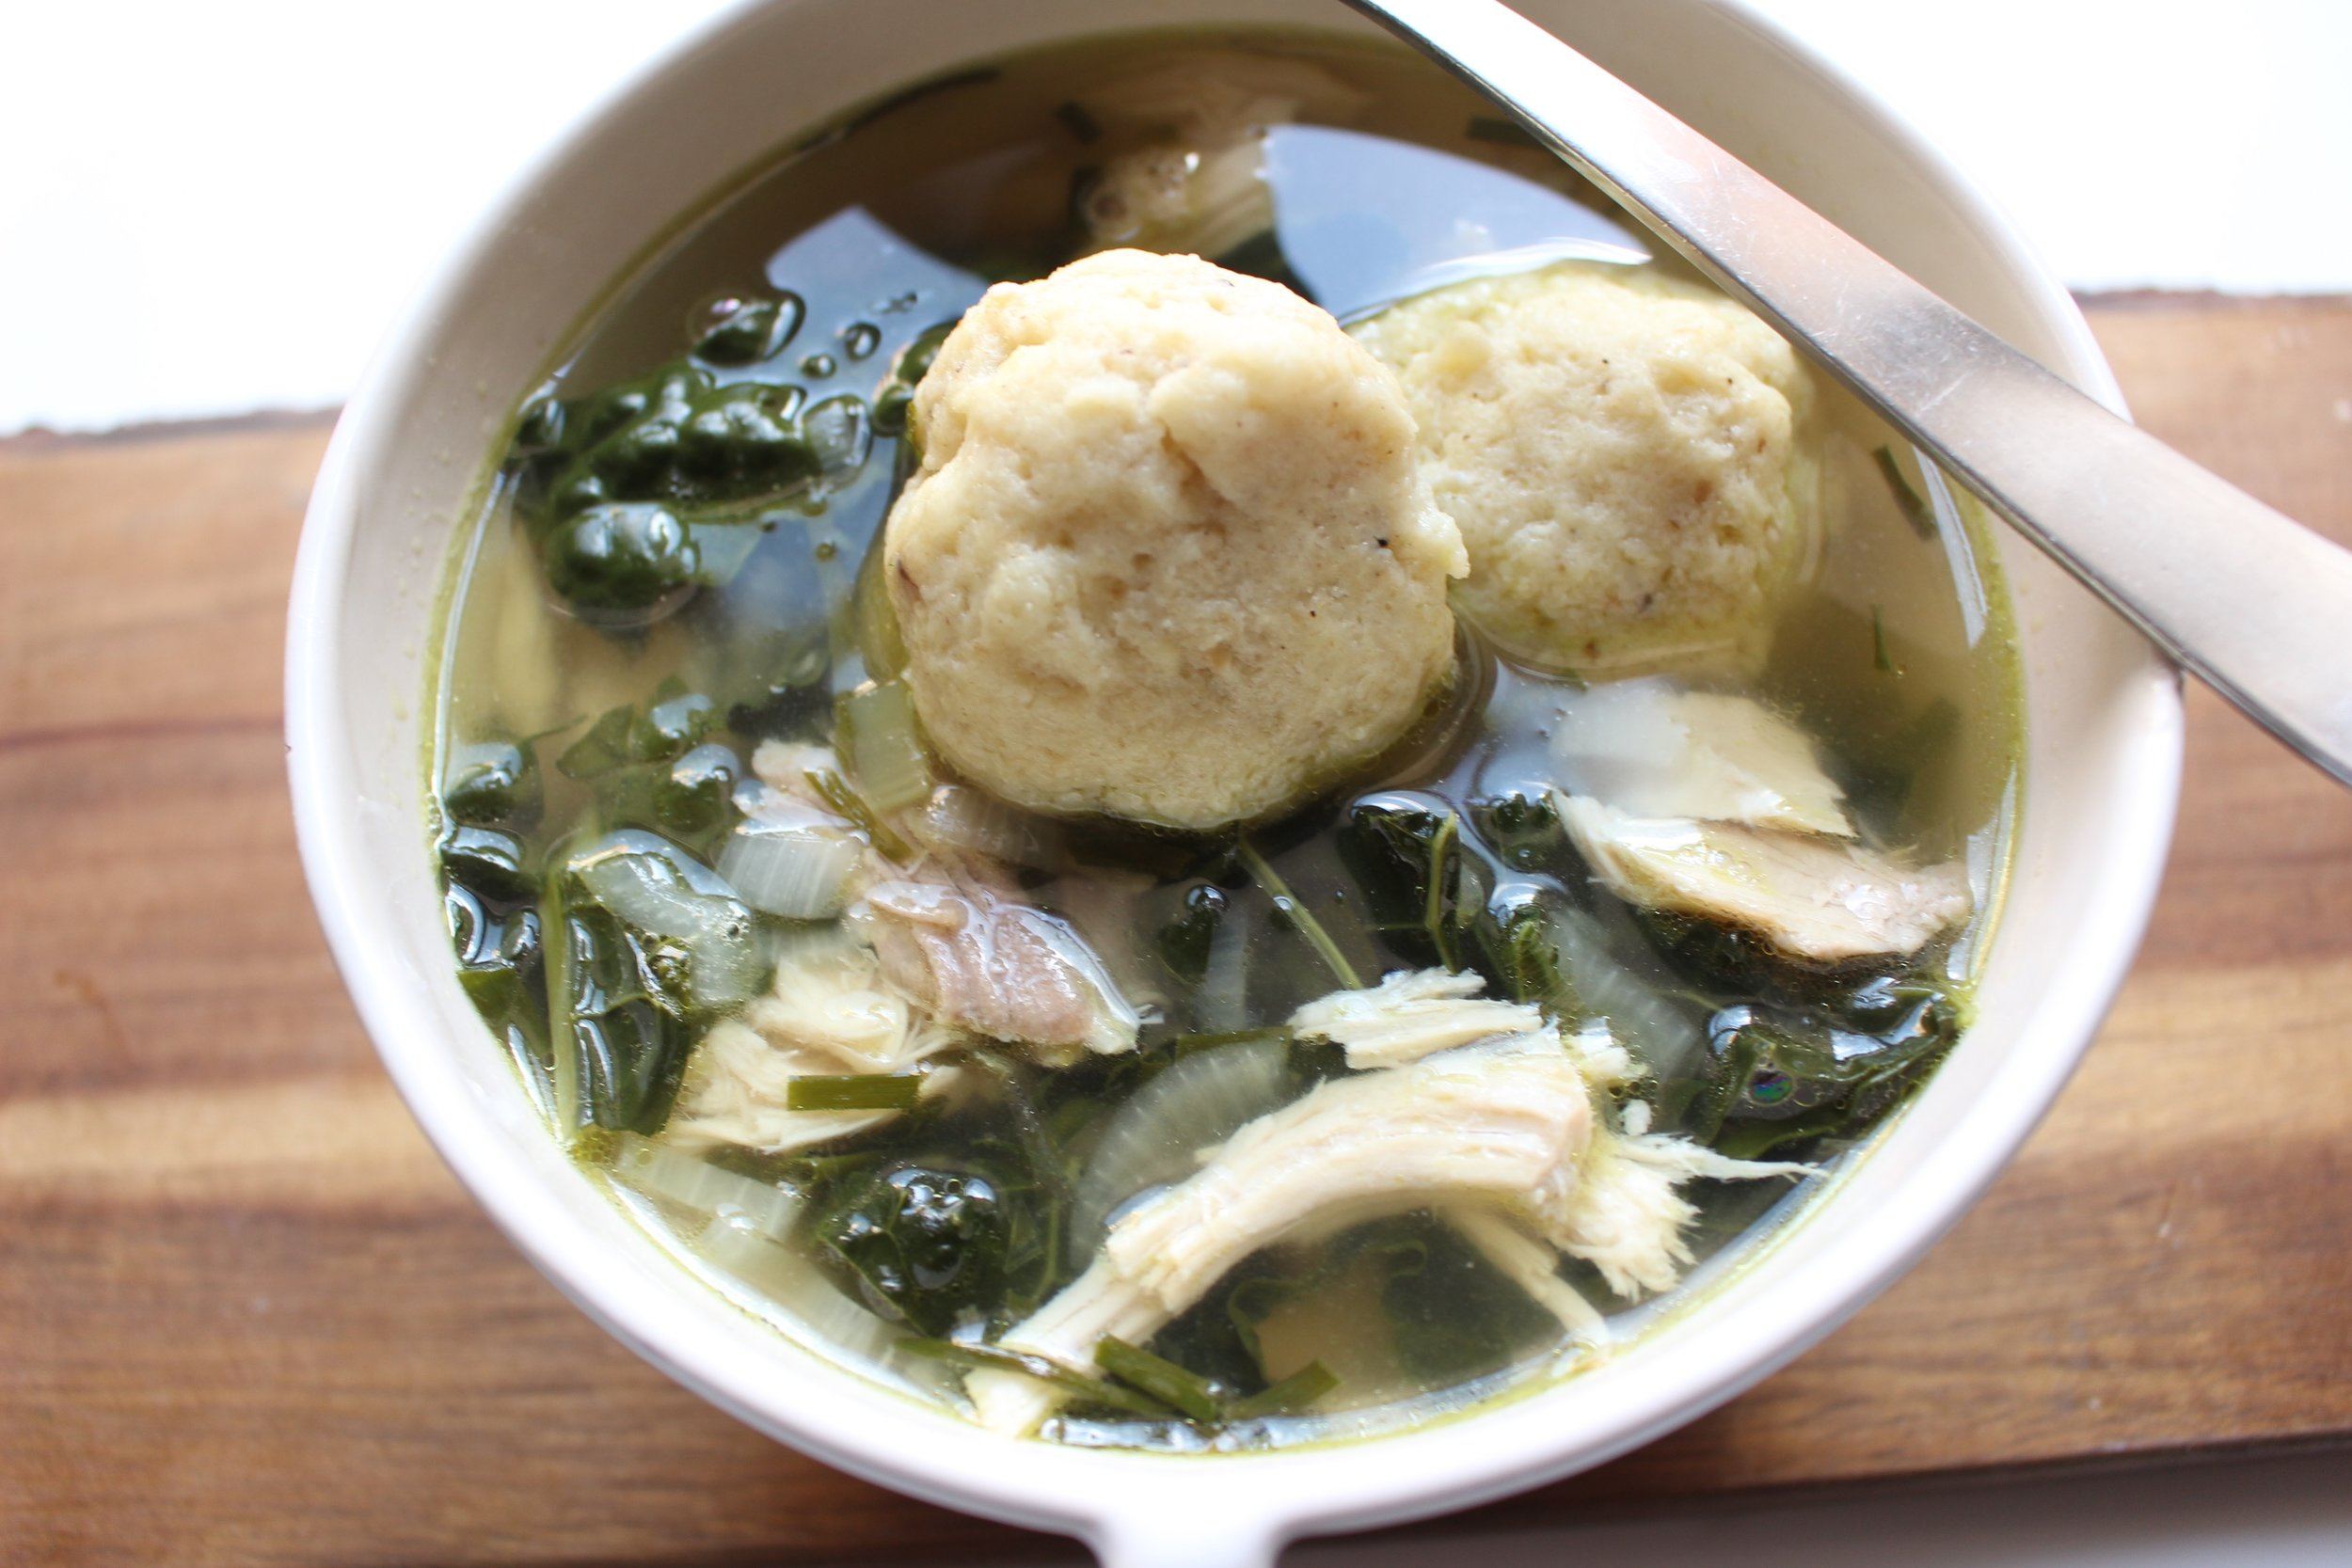 Green Matzo Ball Chicken Soup | Me & The Moose. This soup is a full meal with protein and greens mixed with light and fluffy matzo balls for Passover and any time. #meandthemoose #matzoballsouprecipes #passoverrecipes #soup #kale #chickensouprecipes #healthycomfortfood